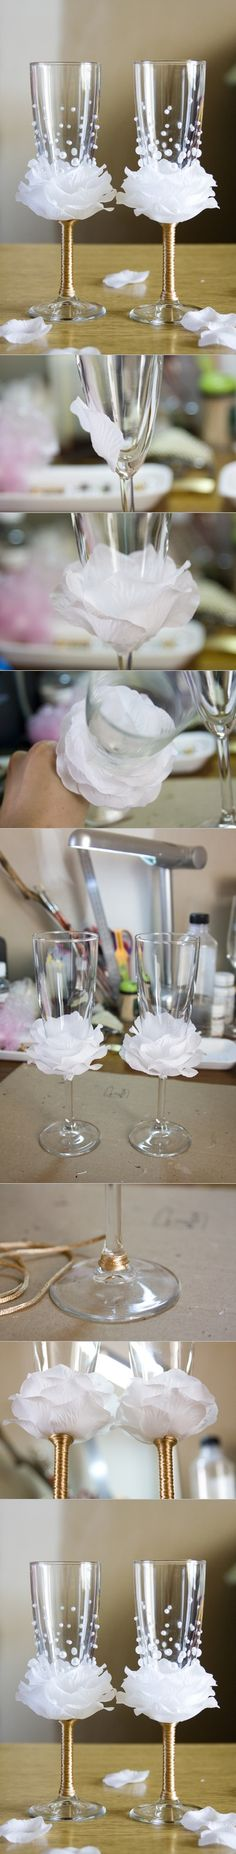 Wonderful DIY Wine Glasses Decoration With Flowers and Beads | WonderfulDIY.com